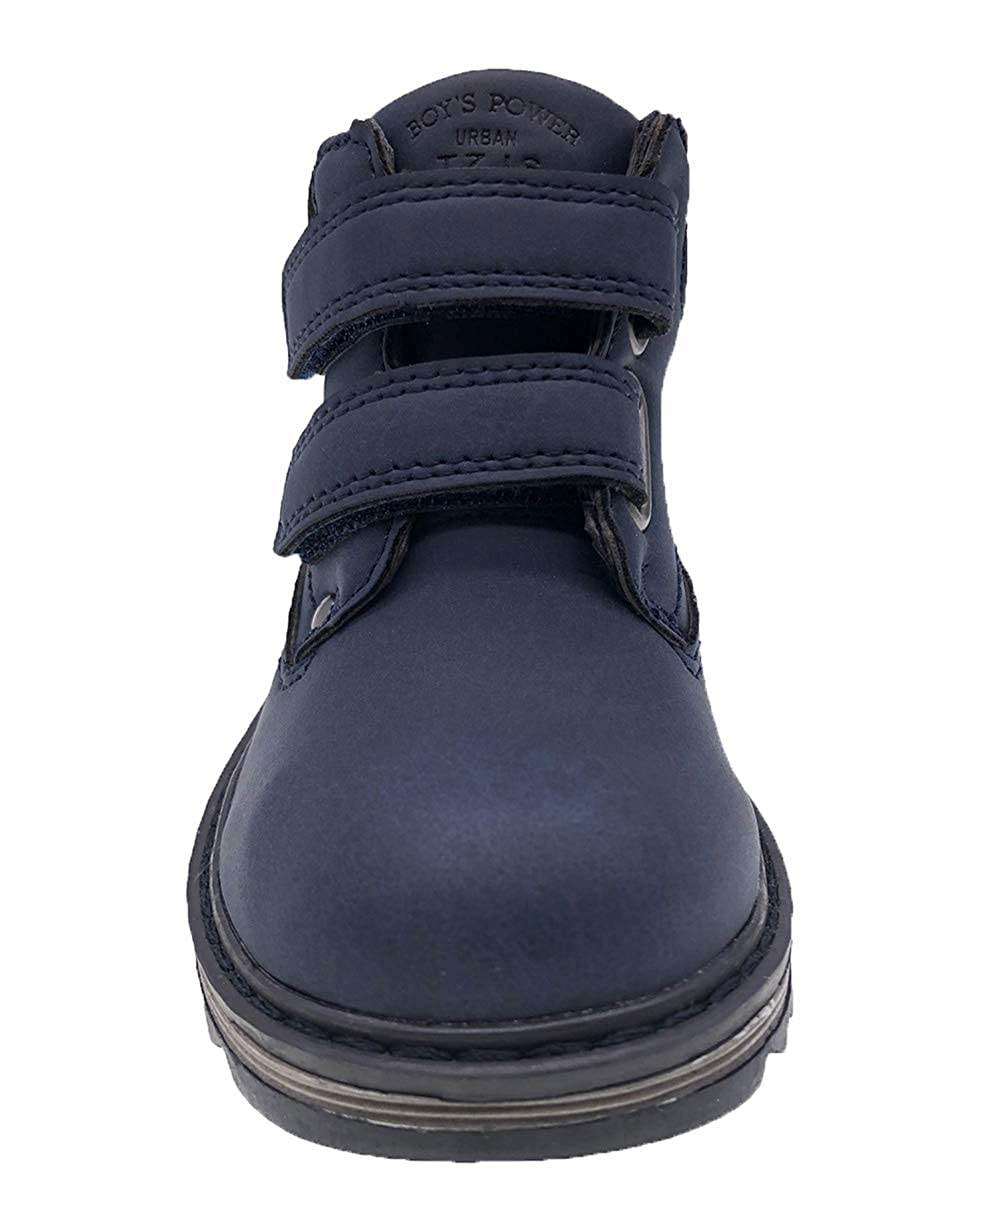 TZJS Kids/' Hiking Boots for Boys Girls Waterproof Outdoor Ankle Boots with Hook and Loop